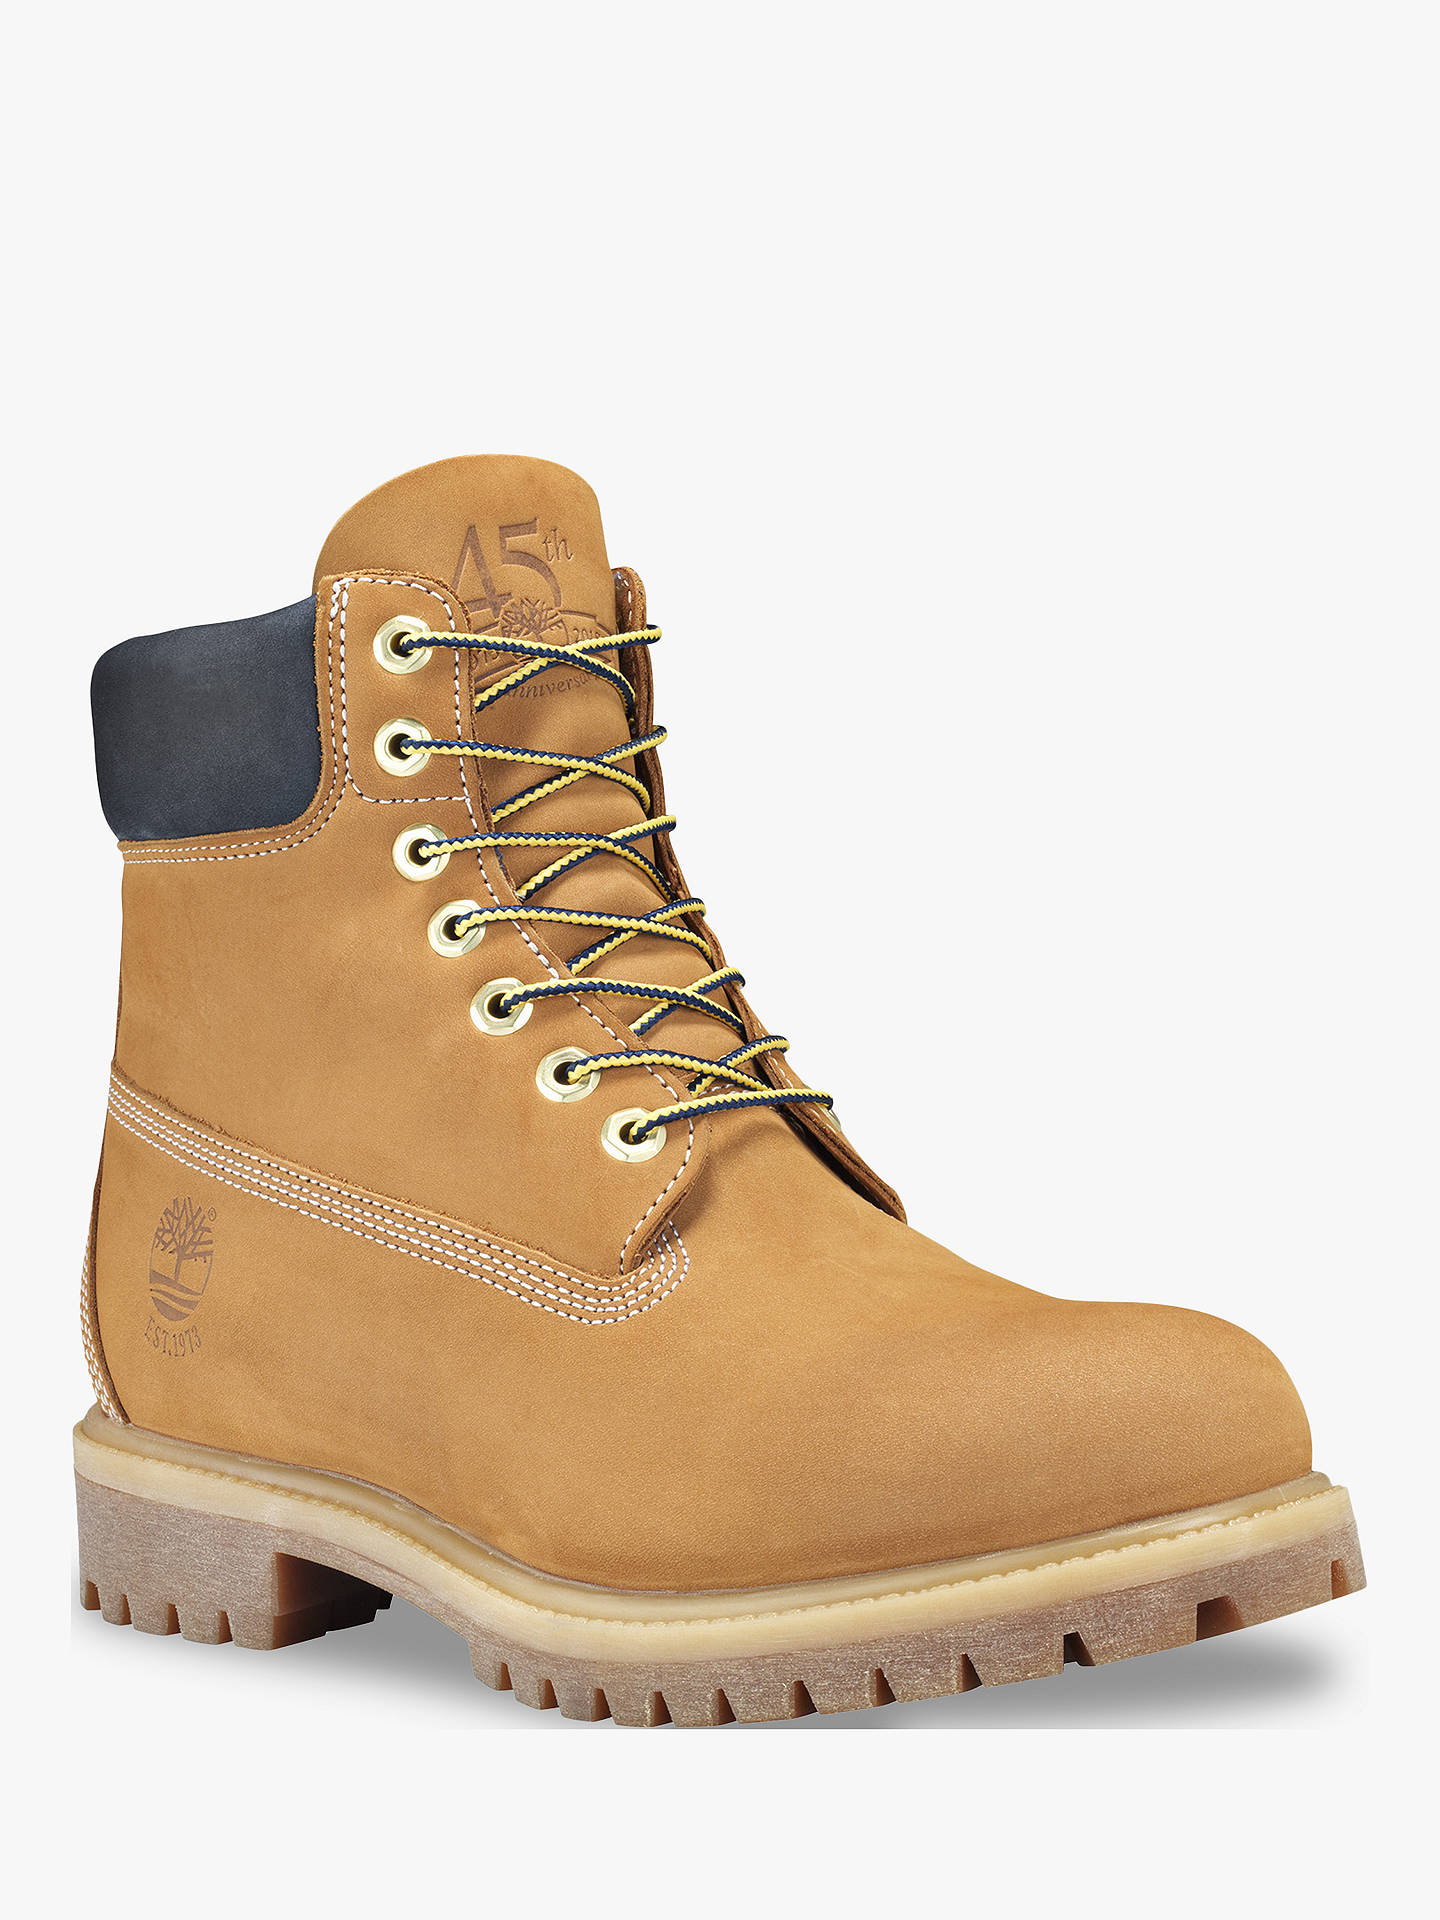 0ef05c43a7 Buy Timberland Classic 6-Inch Premium 45th Anniversary Waterproof Boots,  Wheat, 8 Online